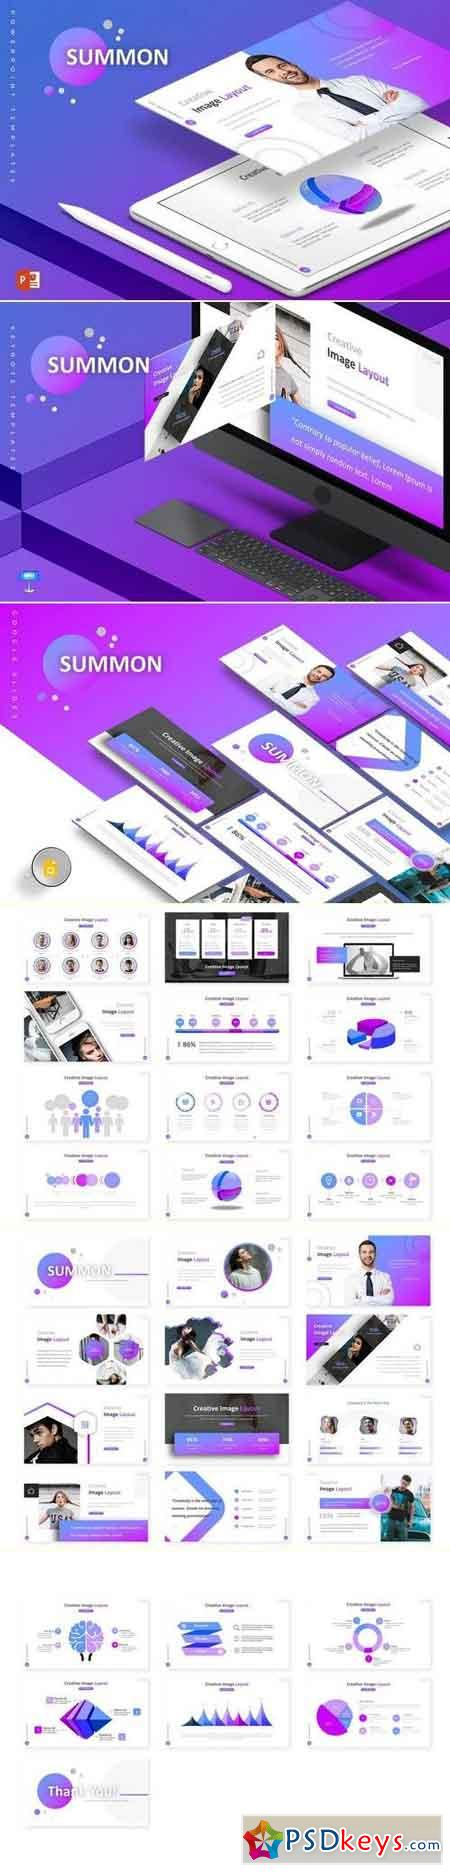 Summon - Powerpoint & Keynote & Google Slide Template